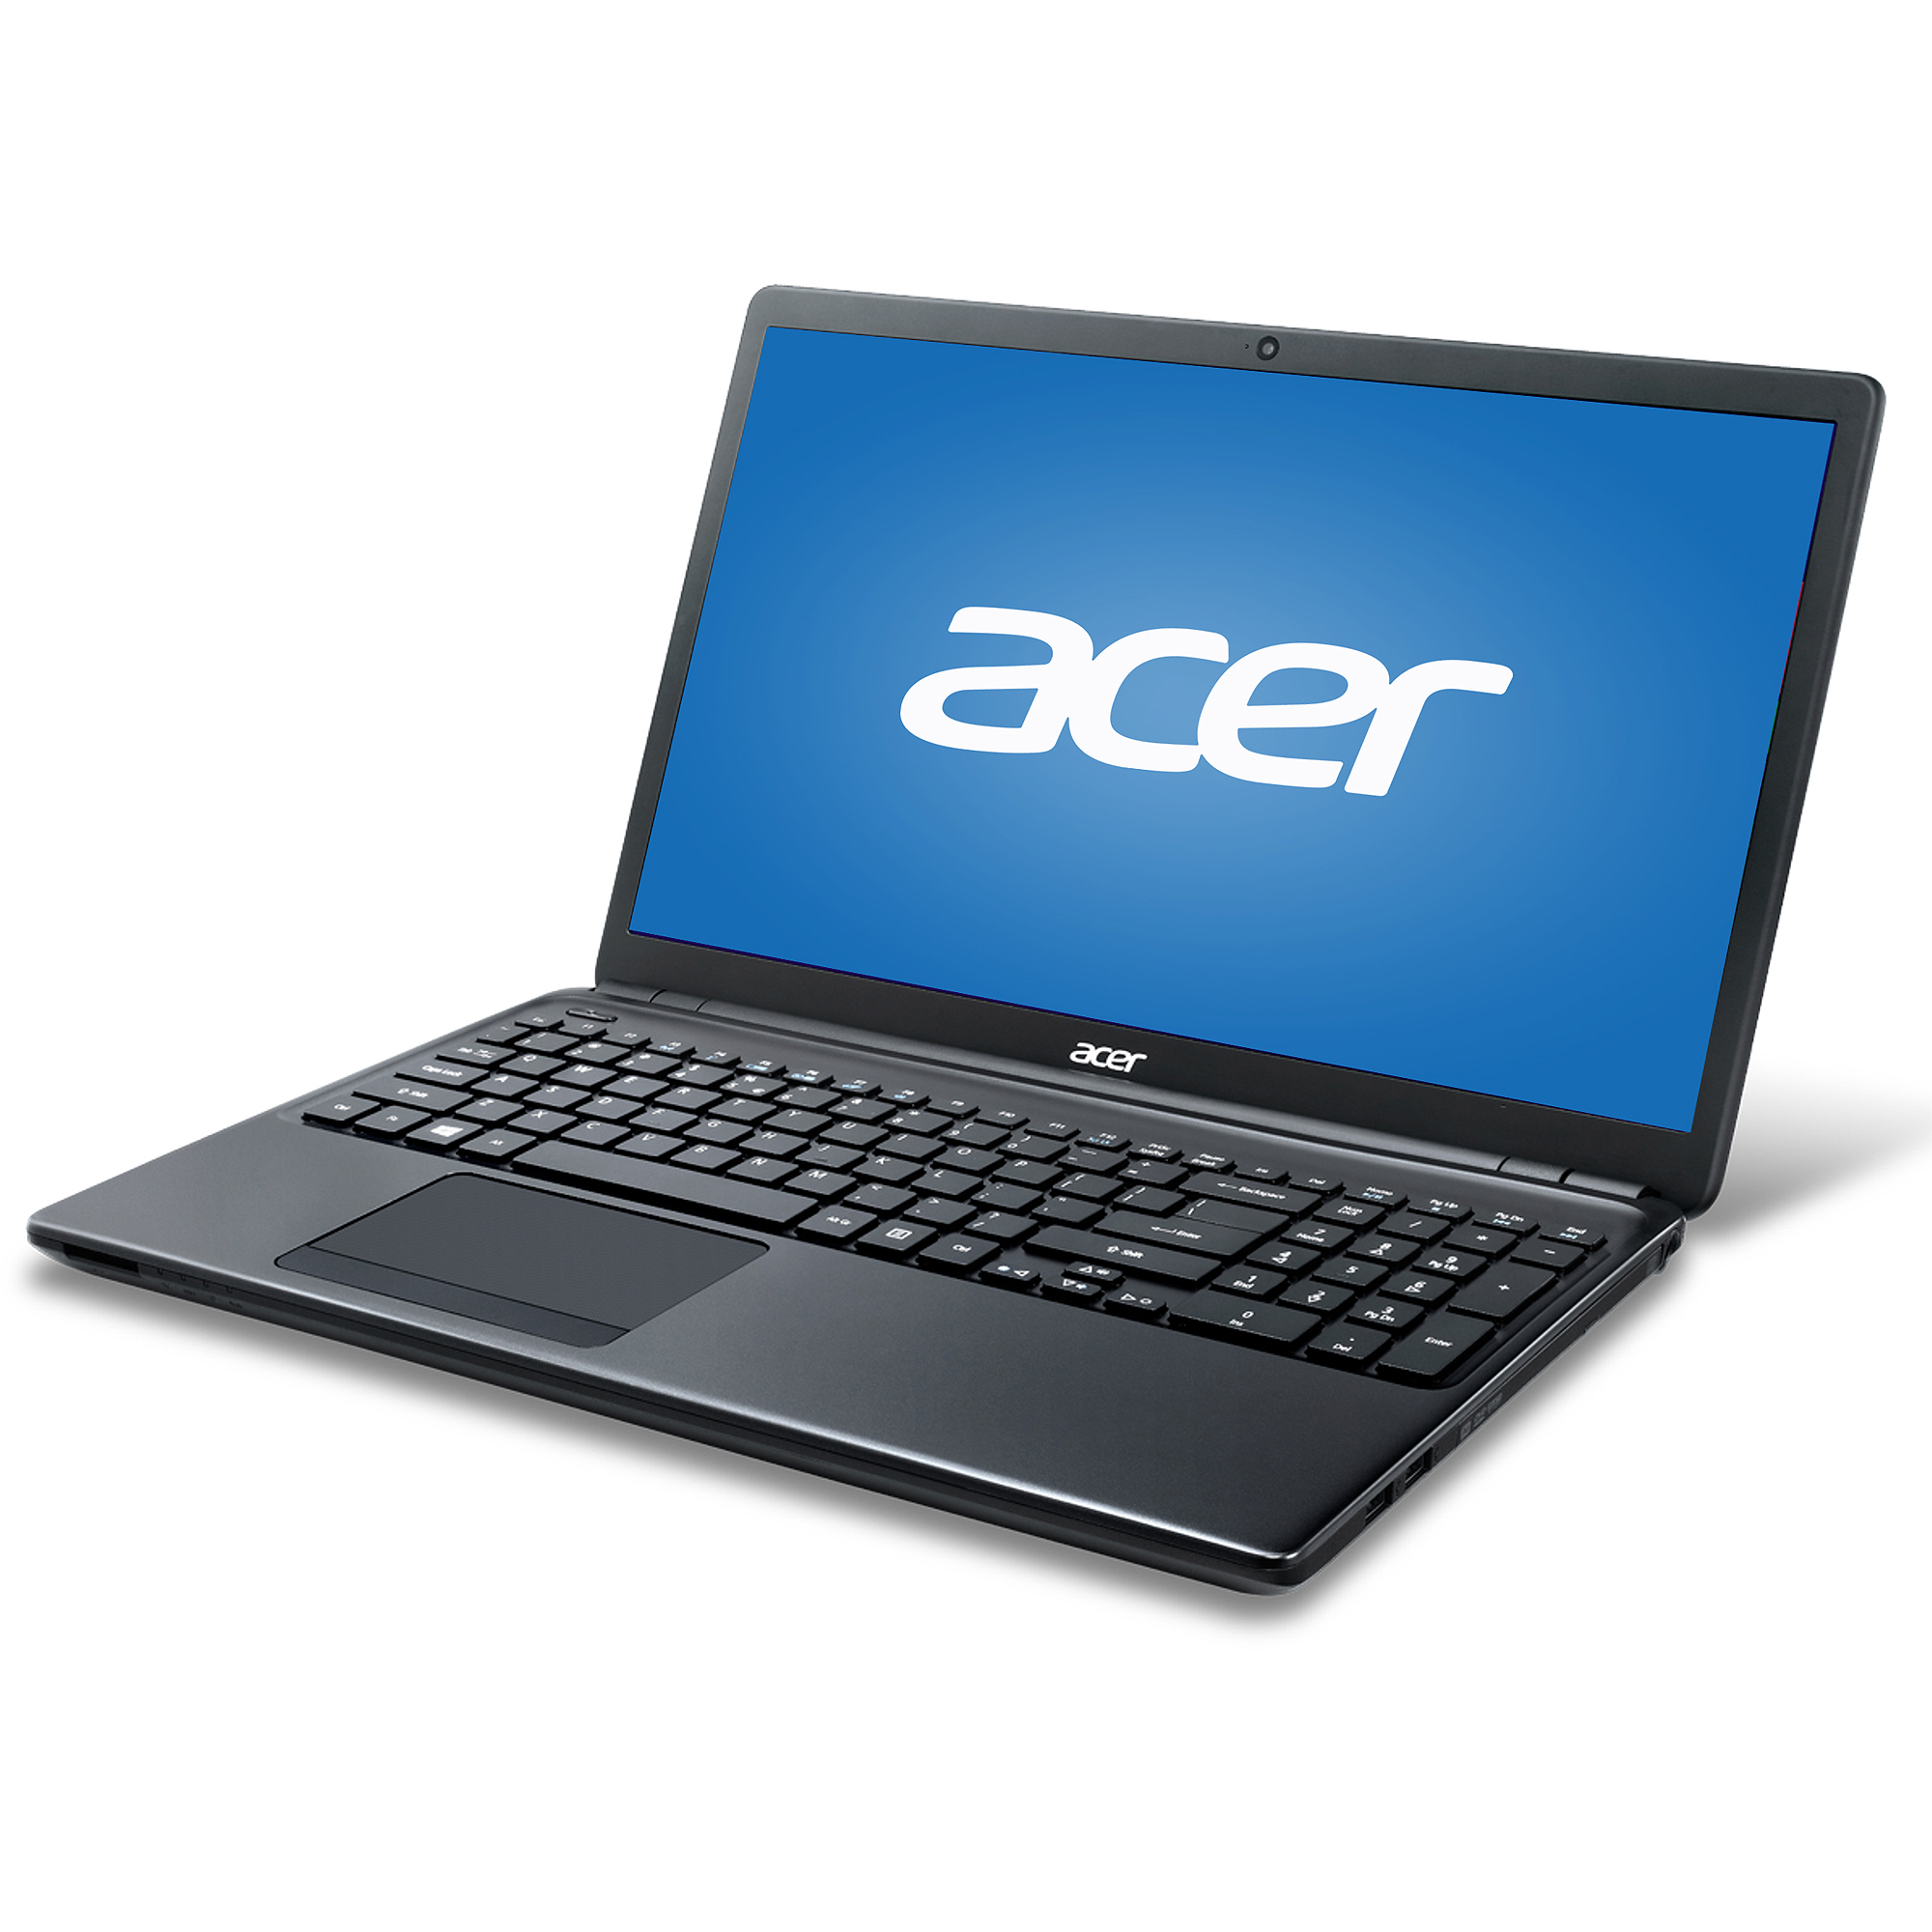 "Acer Black 15.6"" TravelMate P2 TMP255-MP-6686 Laptop PC with Intel Core i3-4010U Dual-Core Processor, 4GB Memory, touch screen, 500GB Hard Drive and Windows 8.1  (Eligible for Windows 10 upgrade)"